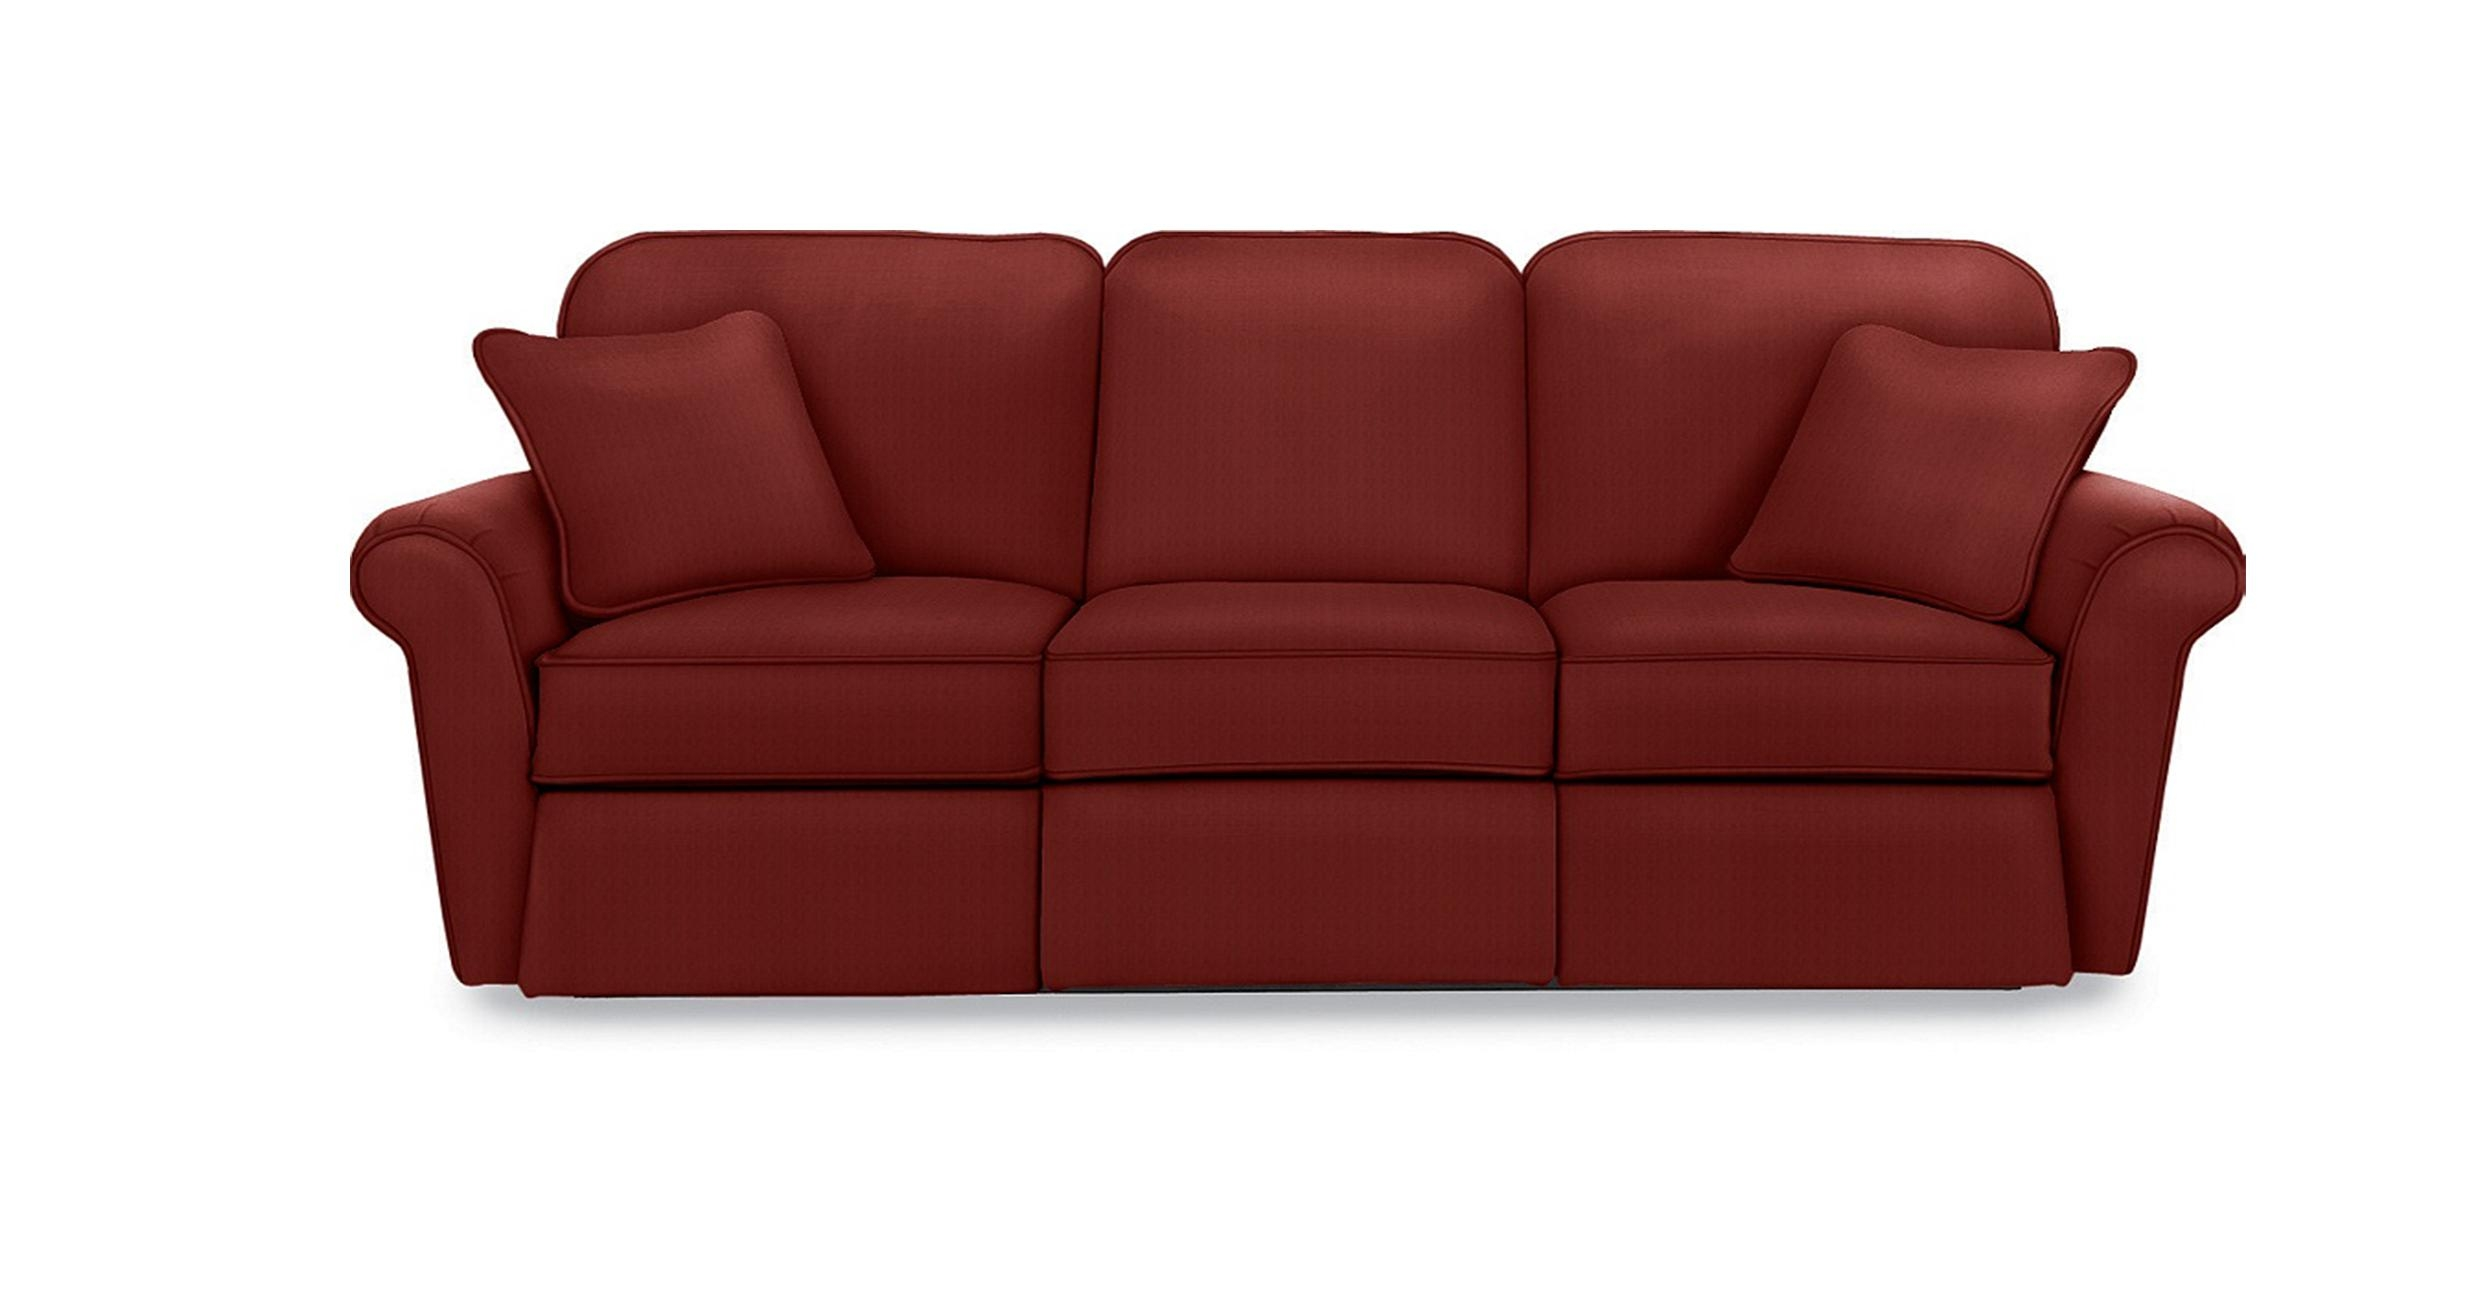 Lazy Boy Sofas And Loveseats – Cornett's Furniture And Bedding Within Lazy Boy Sofas And Chairs (Image 14 of 20)